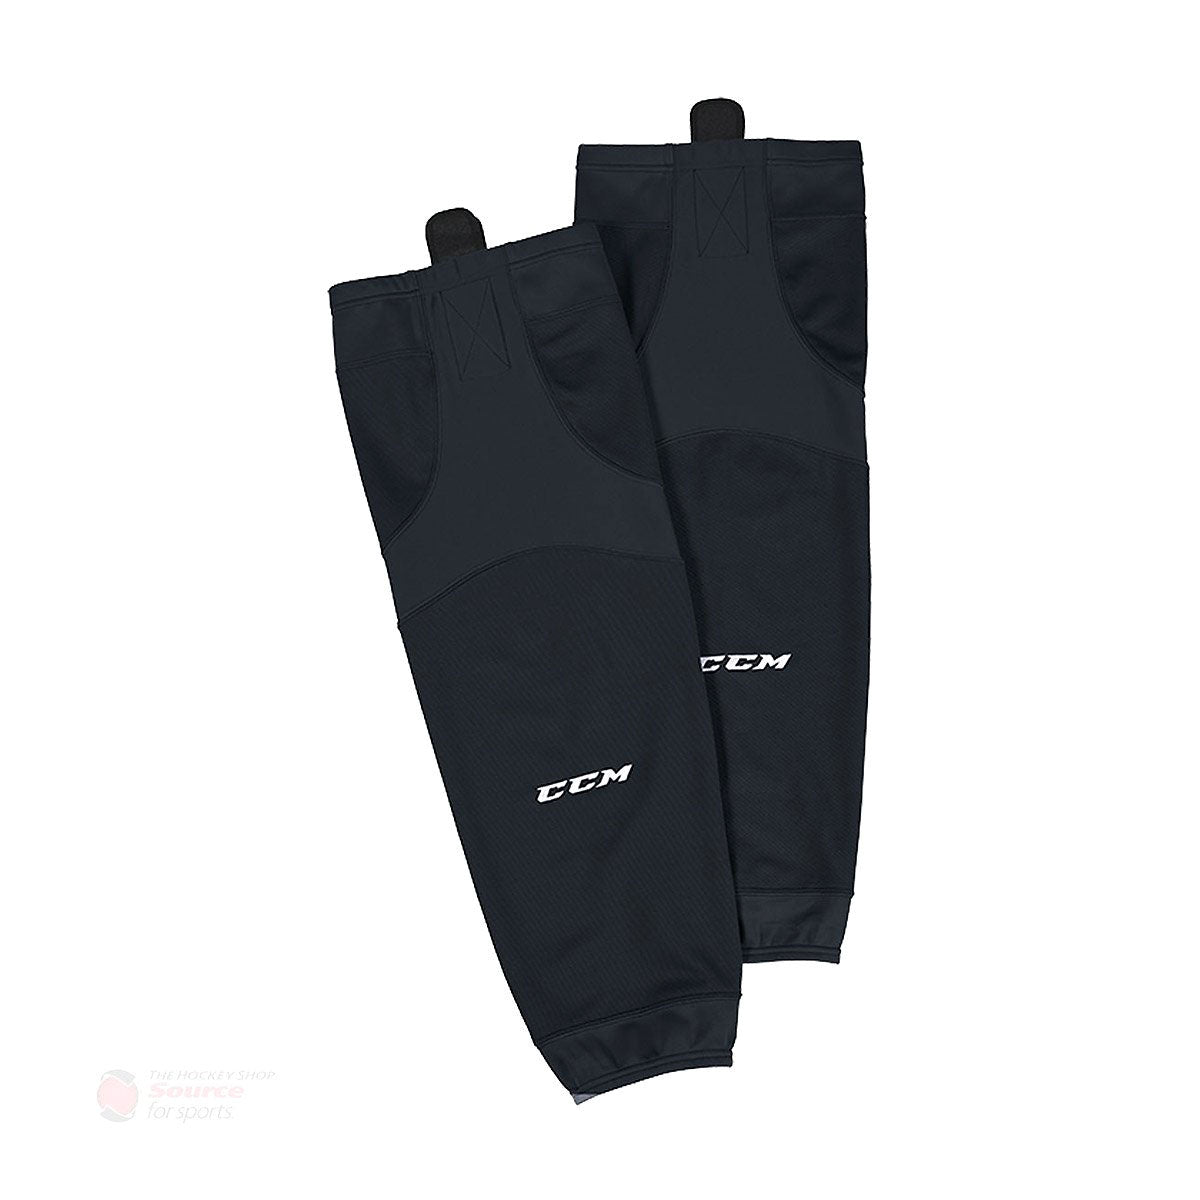 CCM Quicklite 6000 Black Hockey Socks